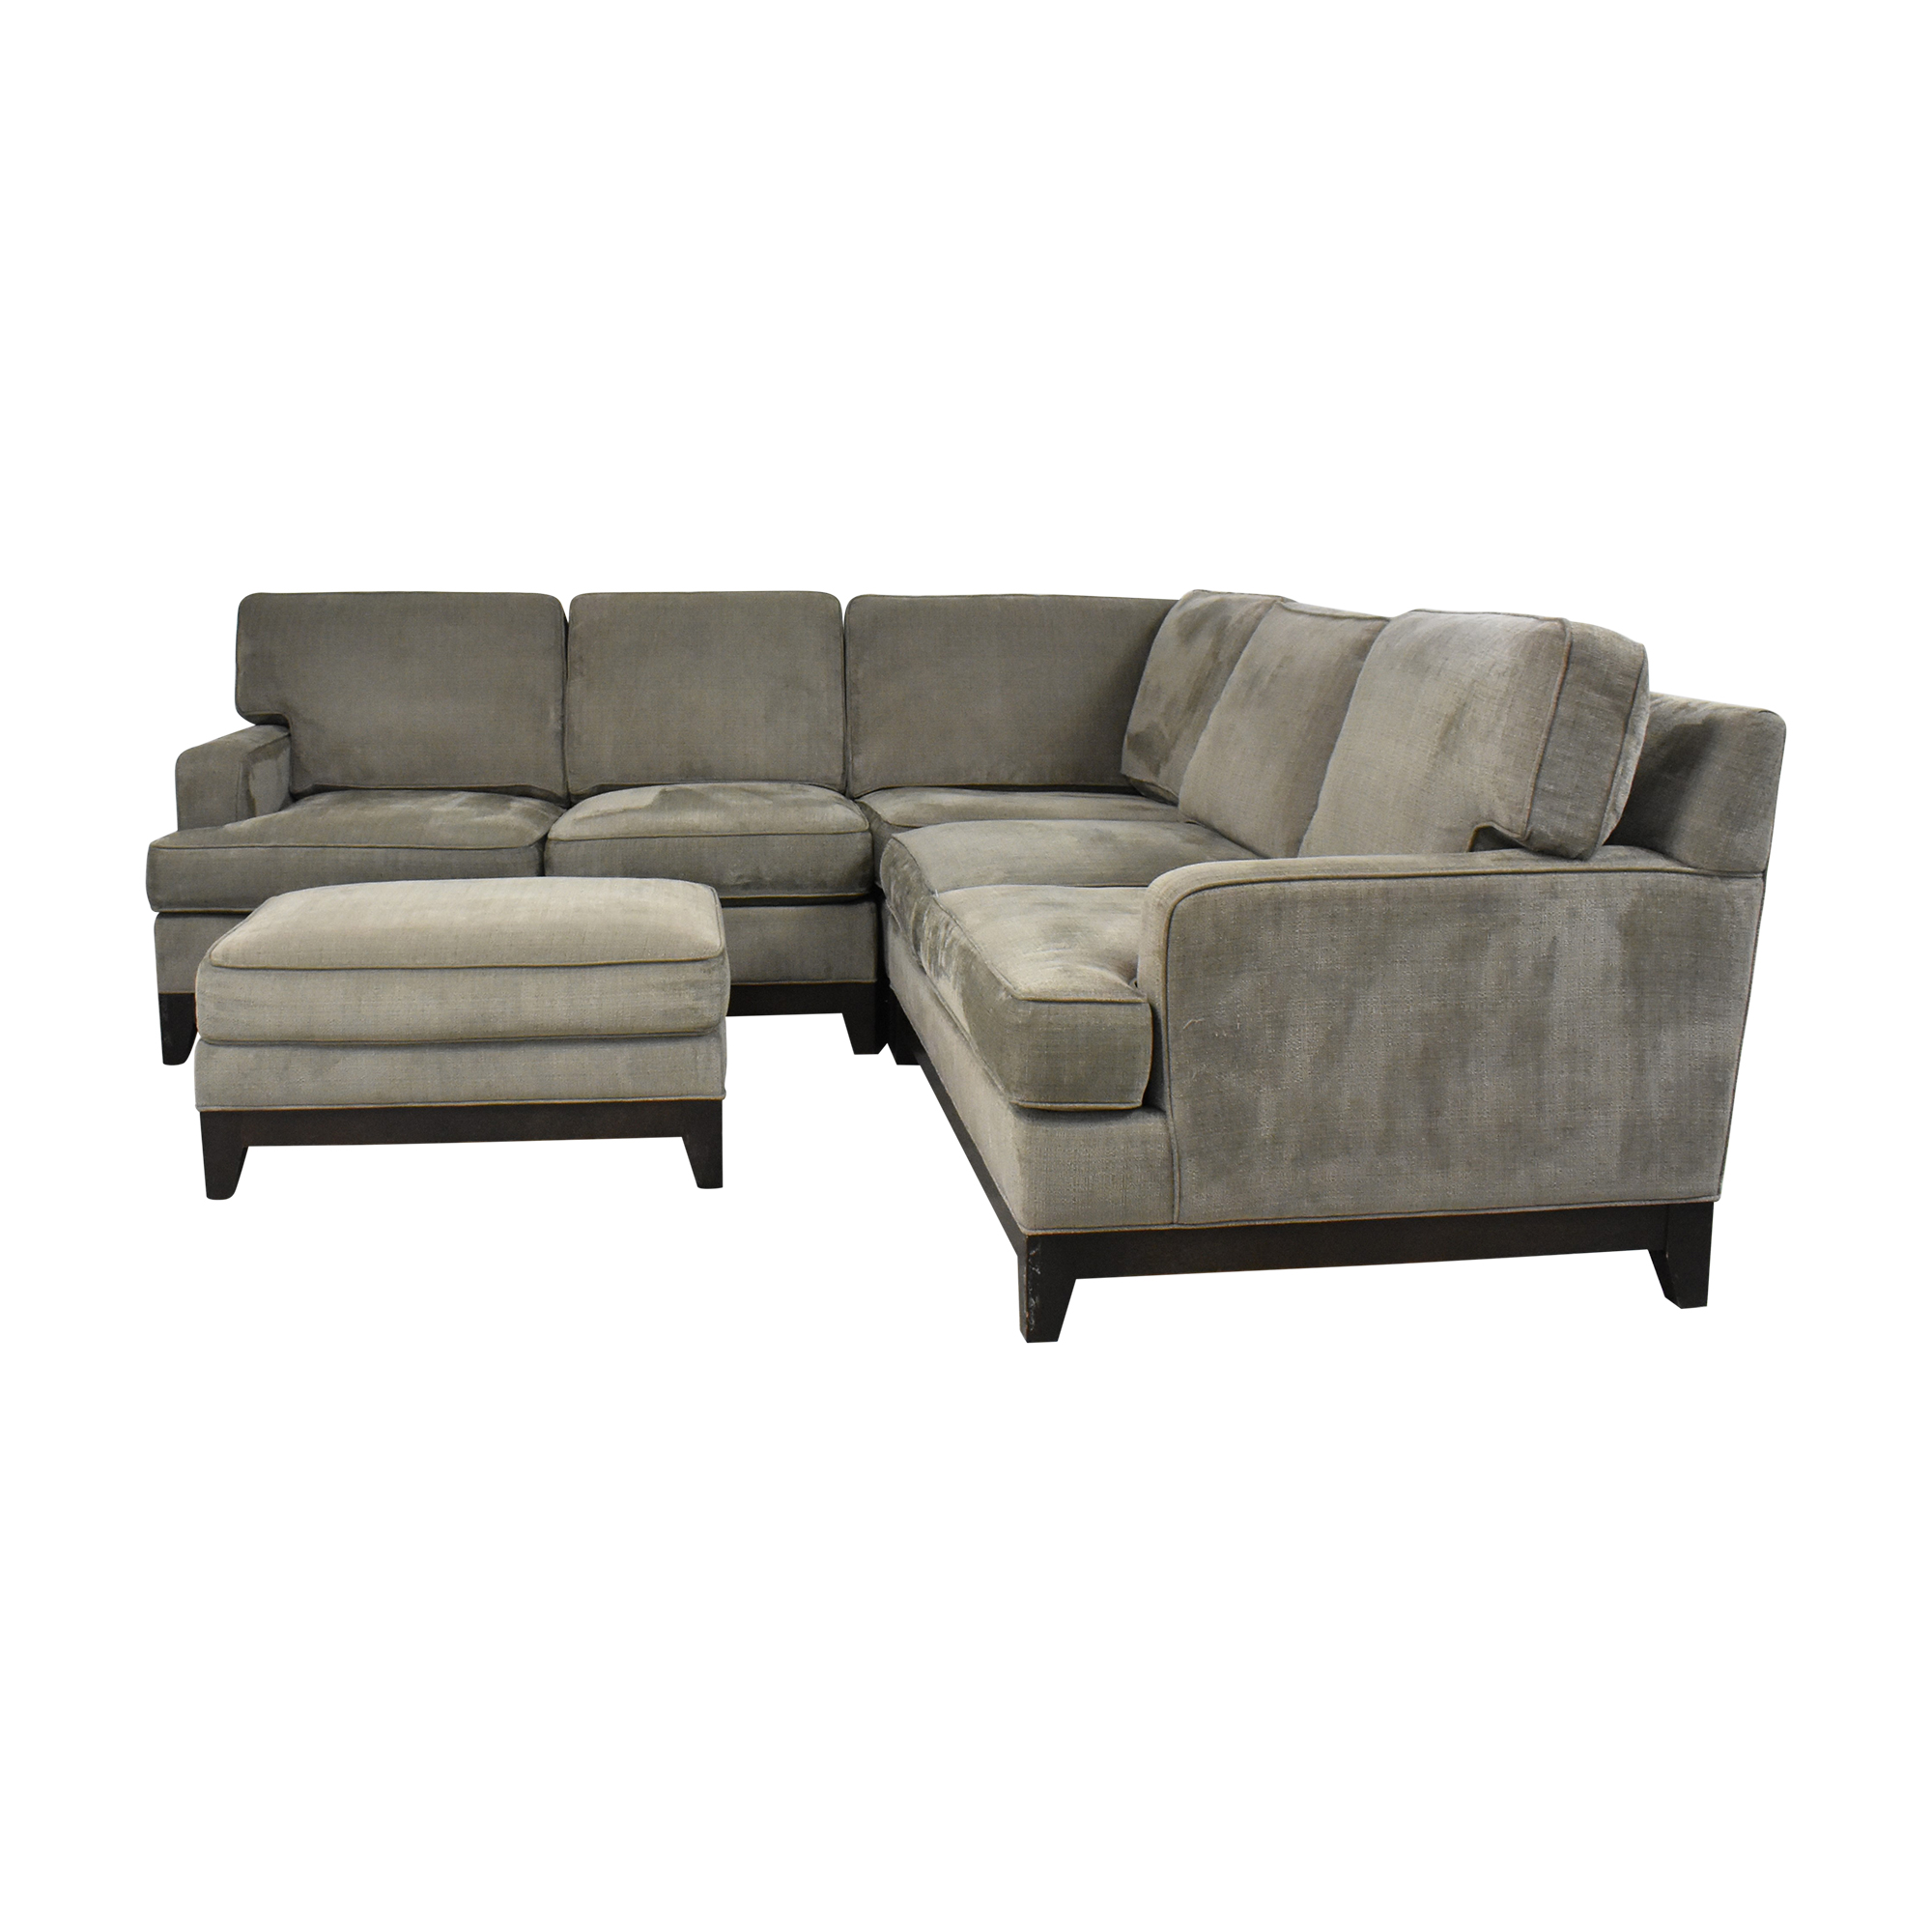 Ethan Allen Ethan Alan Arcata Sectional with Ottoman dimensions